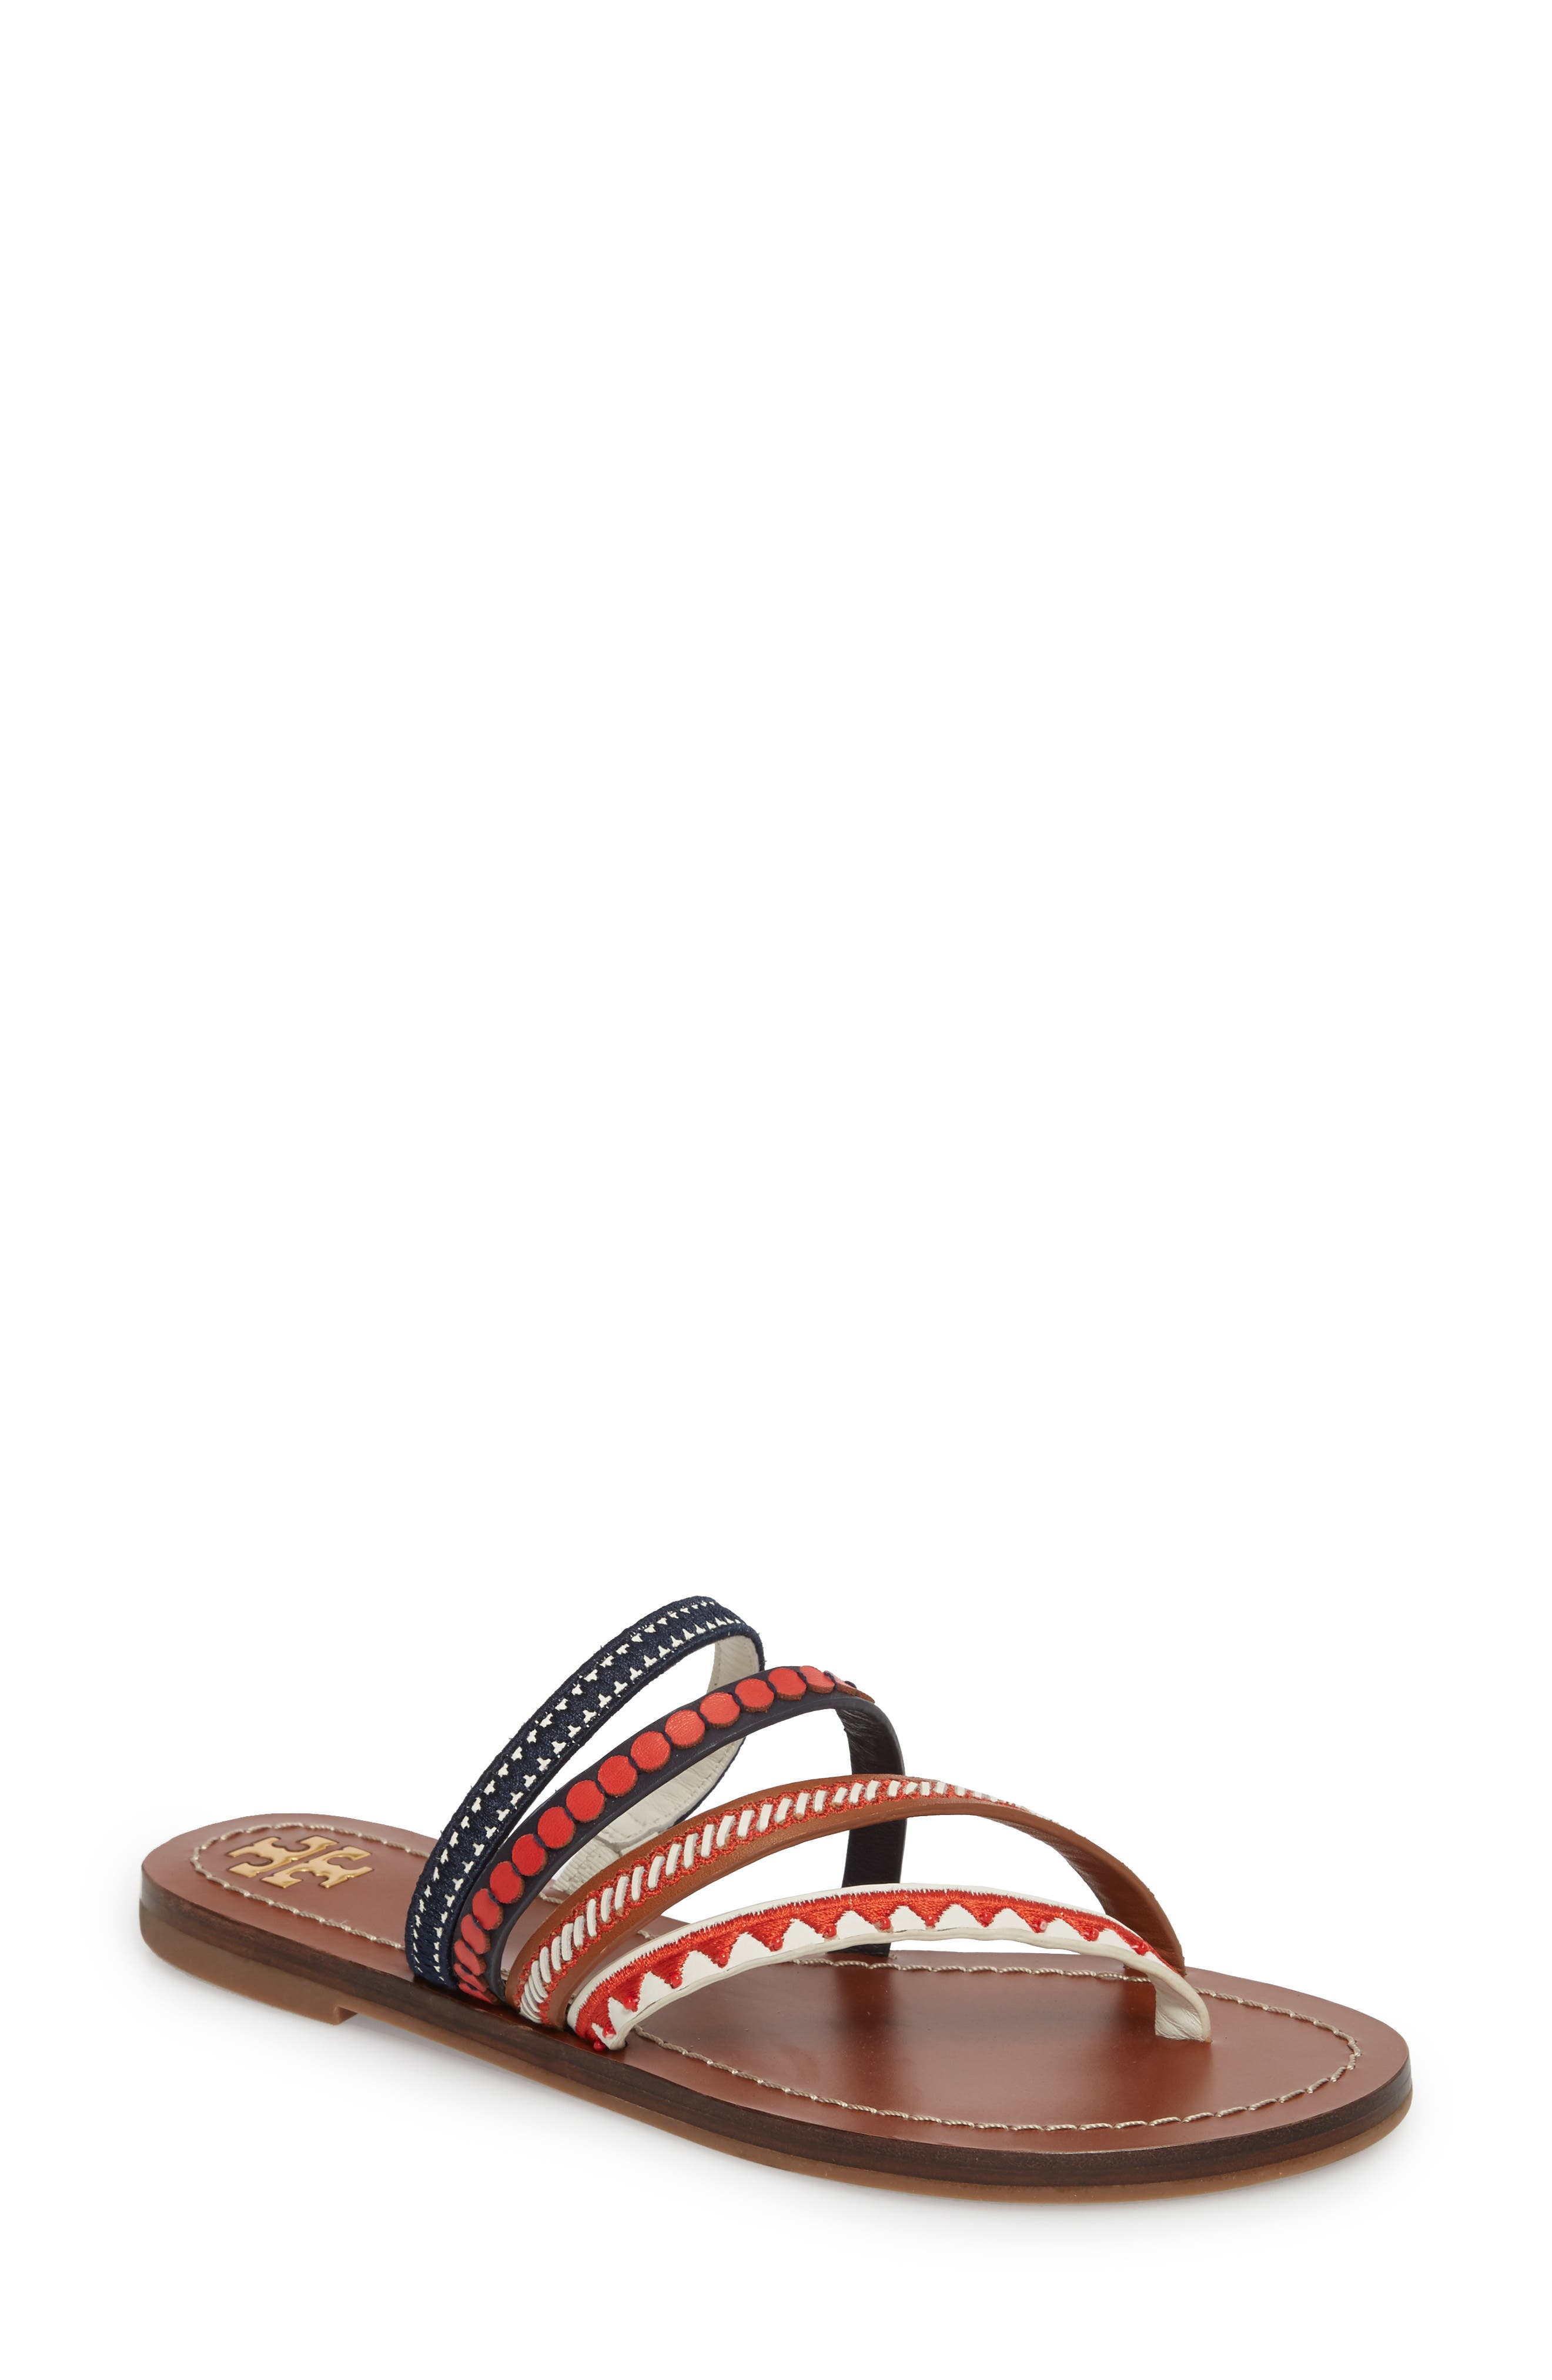 Patos Embroidered Thong Sandal,                         Main,                         color, PERFECT CUOIO/ MULTI MUTLI